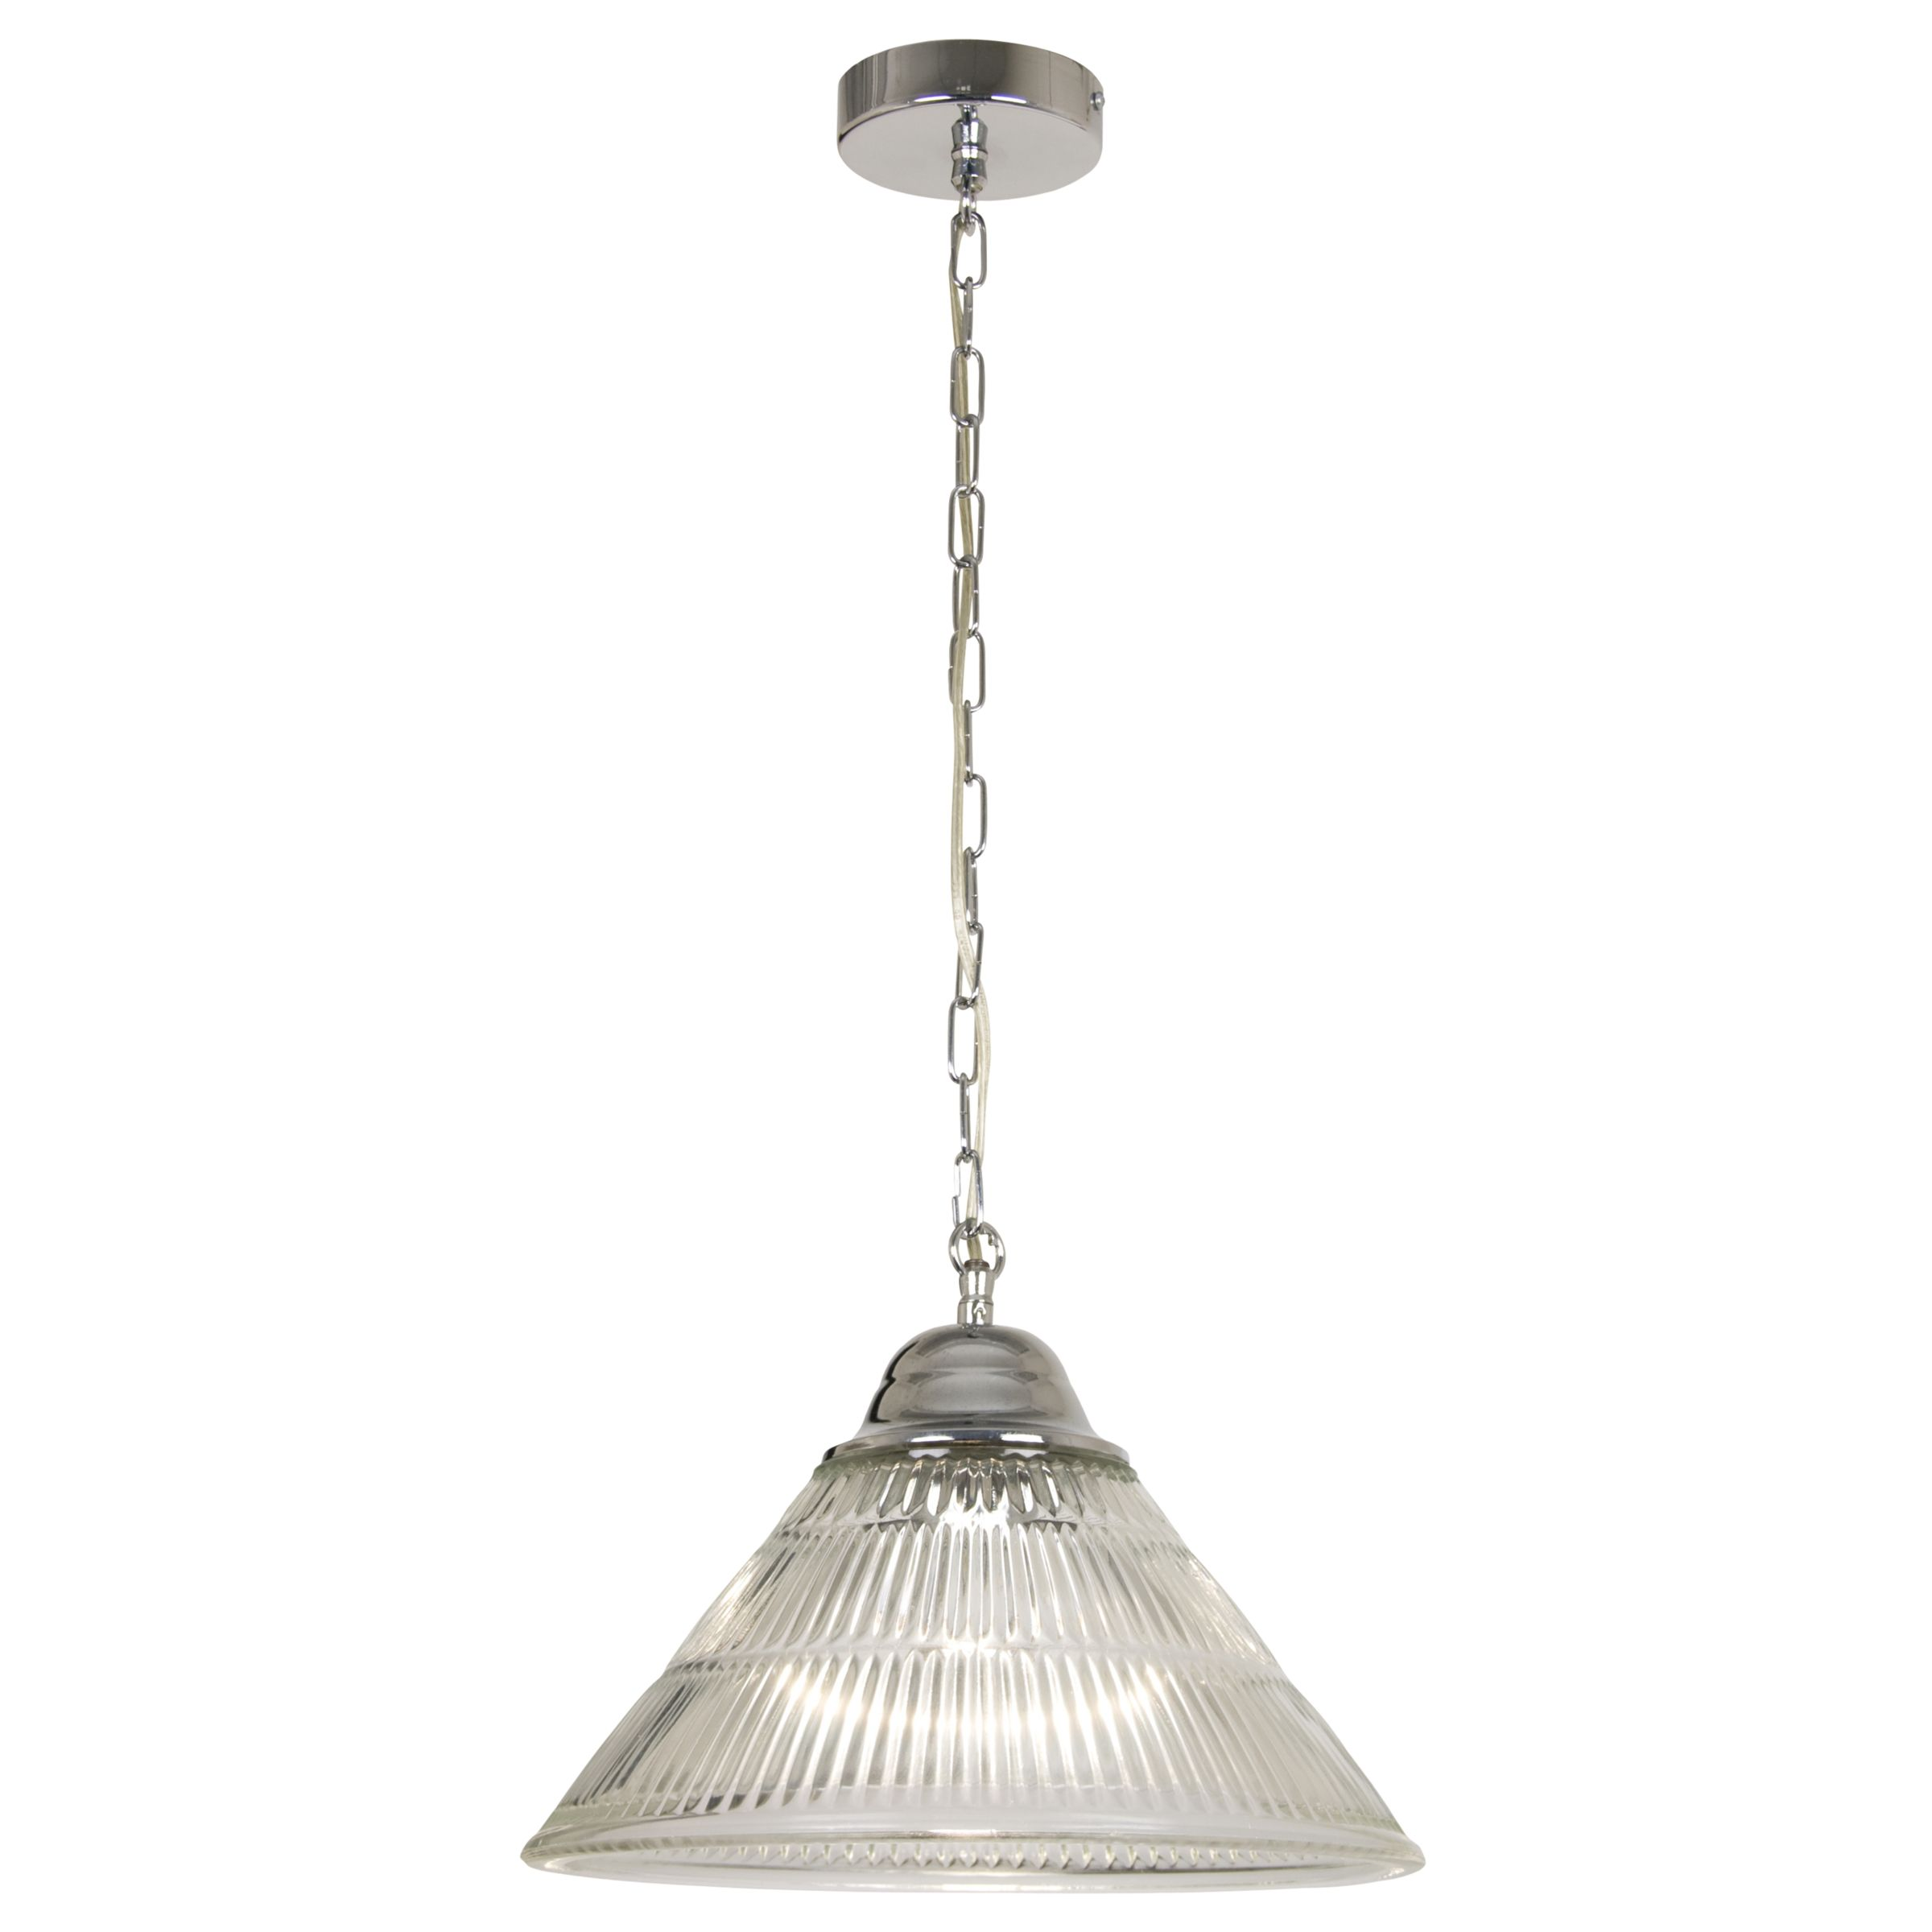 John Lewis White Ceiling Lights : John lewis kori ceiling light review compare prices